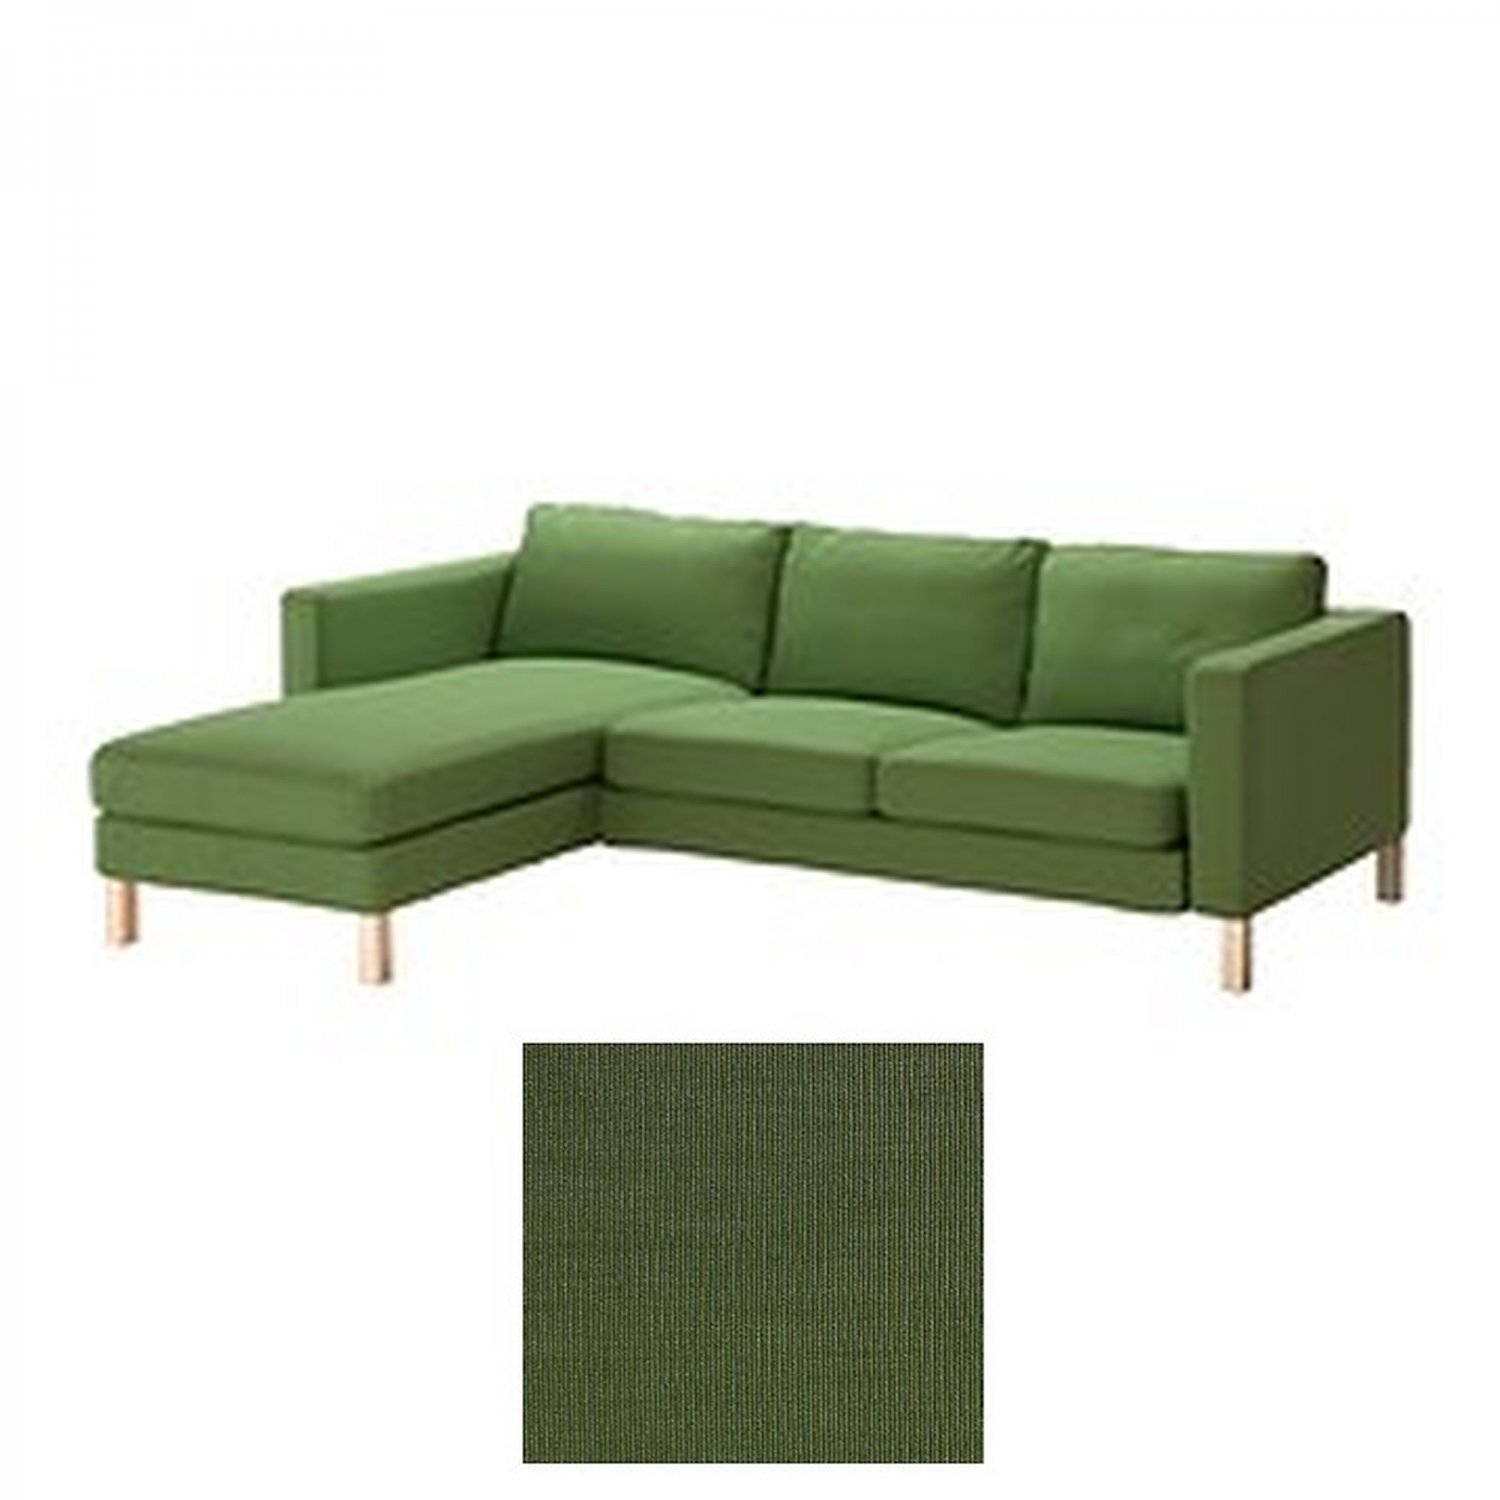 Ikea karlstad 2 seat loveseat sofa and chaise slipcover cover sivik green add on last one Cover for loveseat